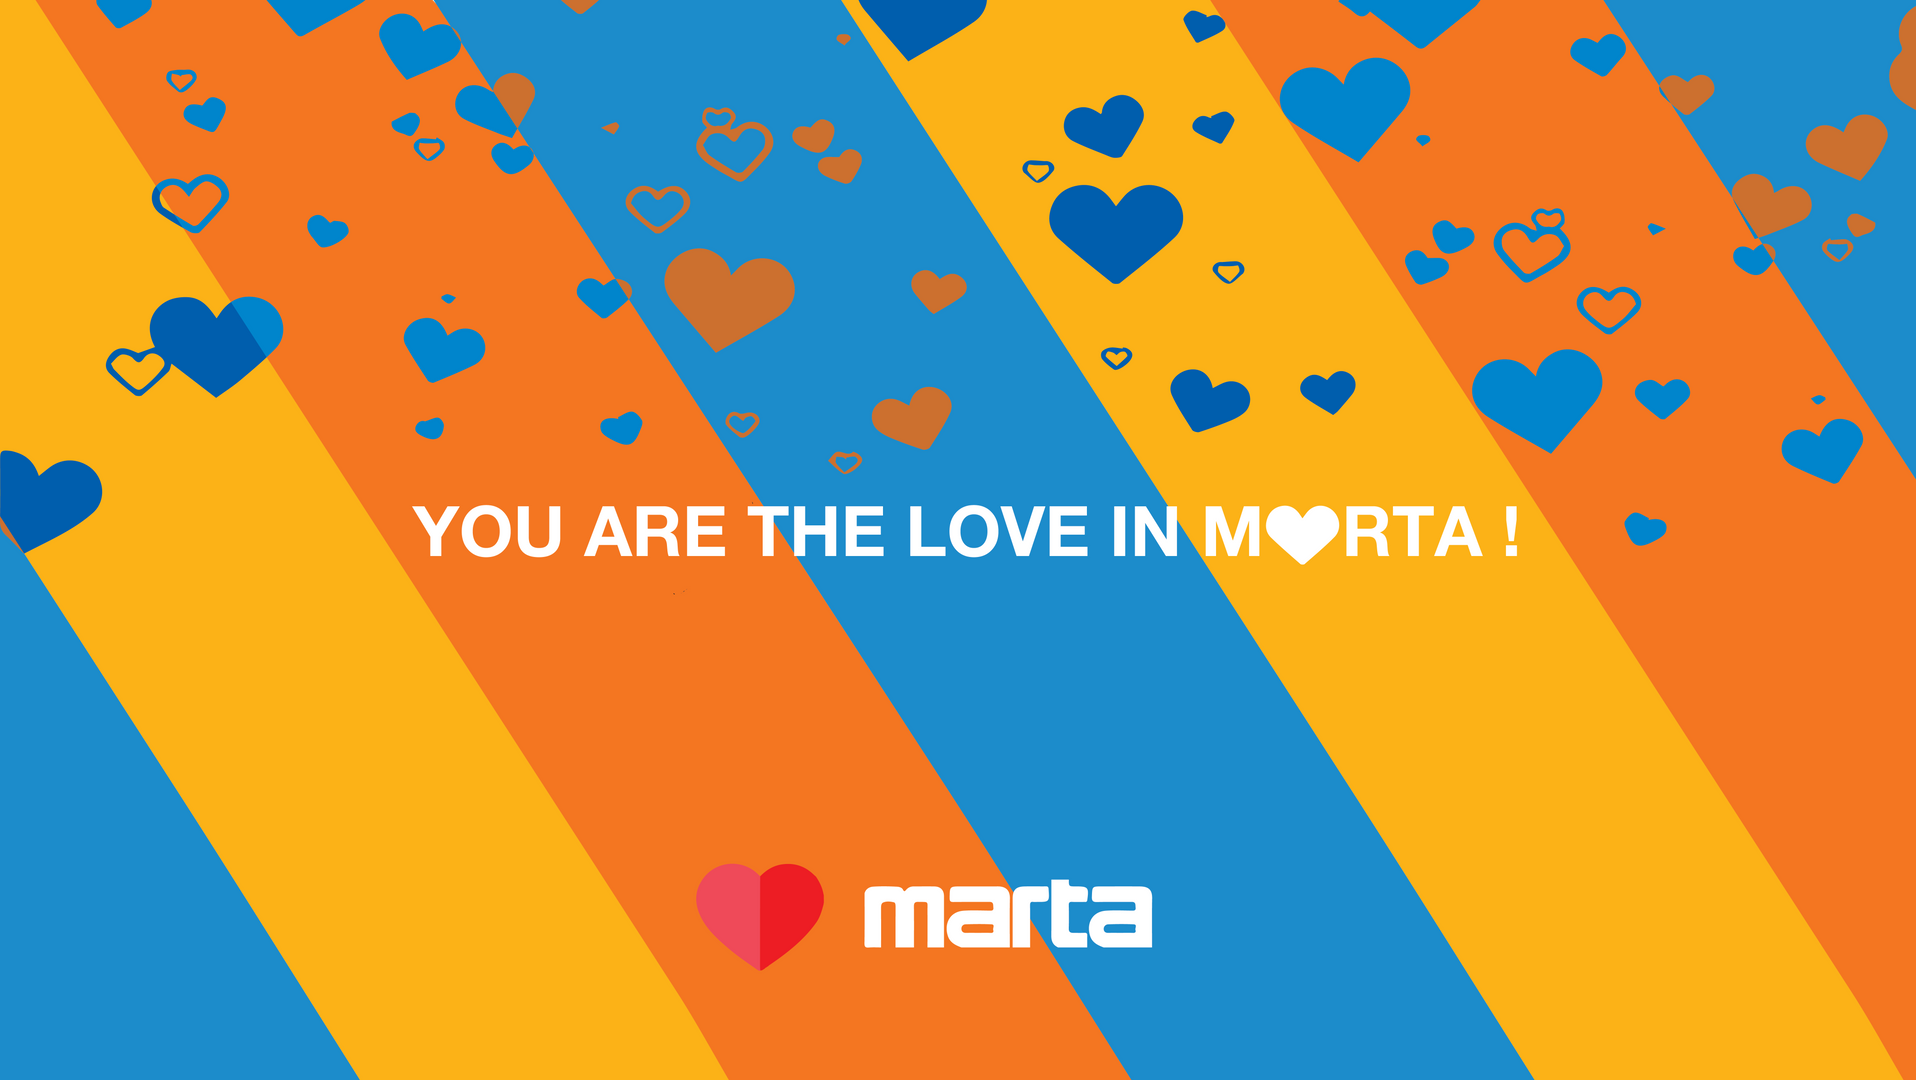 You are the love in marta